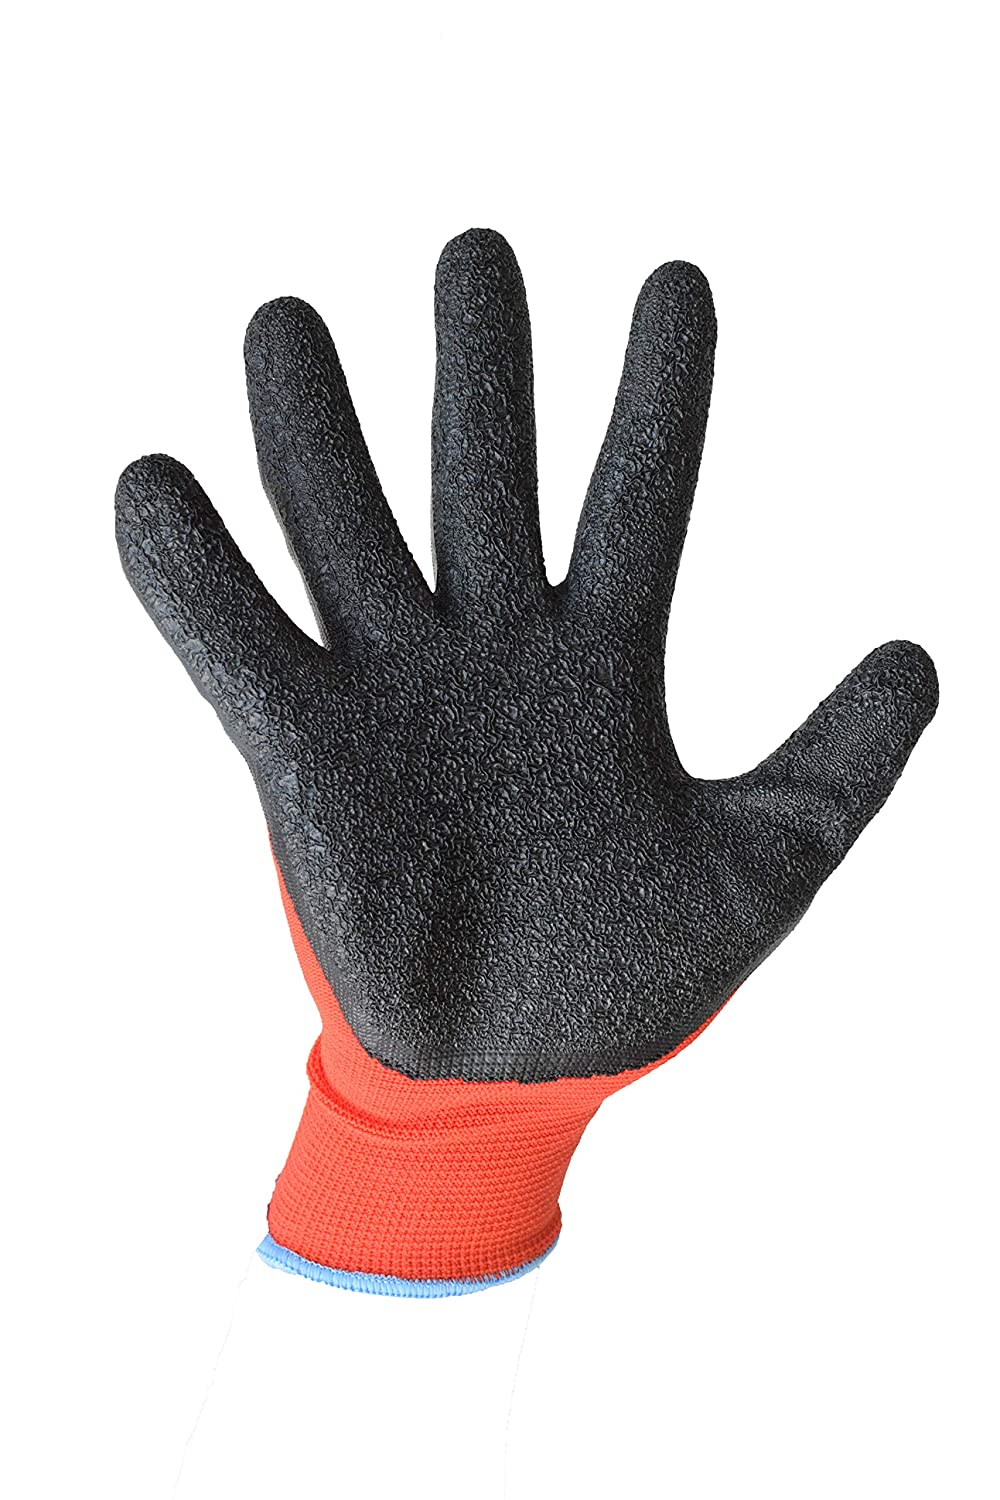 By ASPRO etc 7 size 7 Latex coated work gloves for builders 20 pairs, SMALL 20 Pairs Size S gardeners